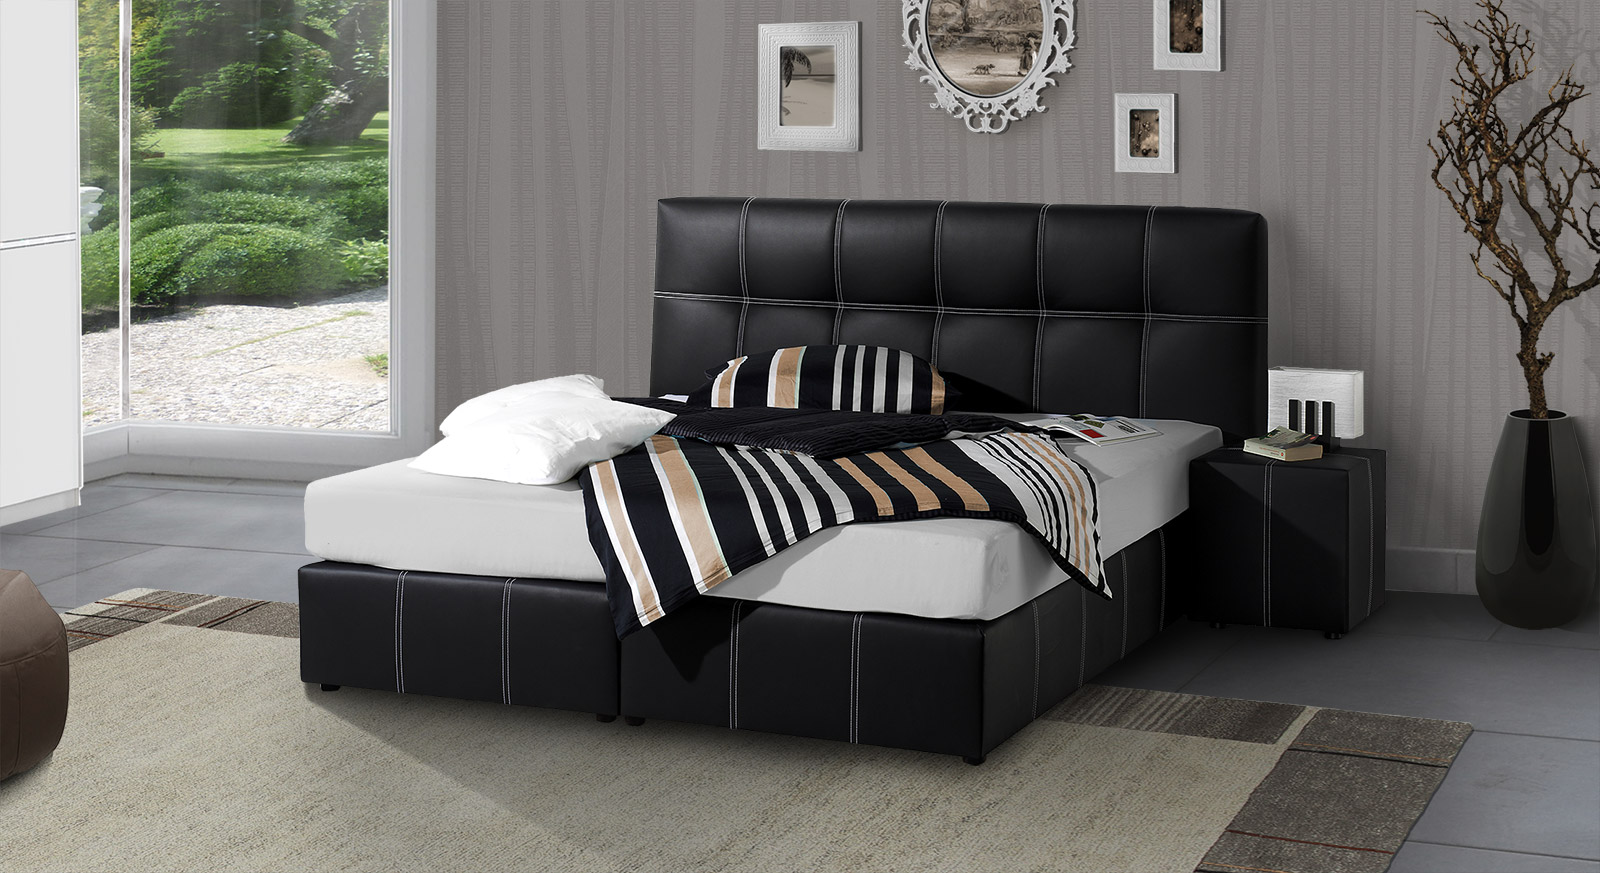 boxspringbett aus kunstleder in schwarz oder wei athen. Black Bedroom Furniture Sets. Home Design Ideas